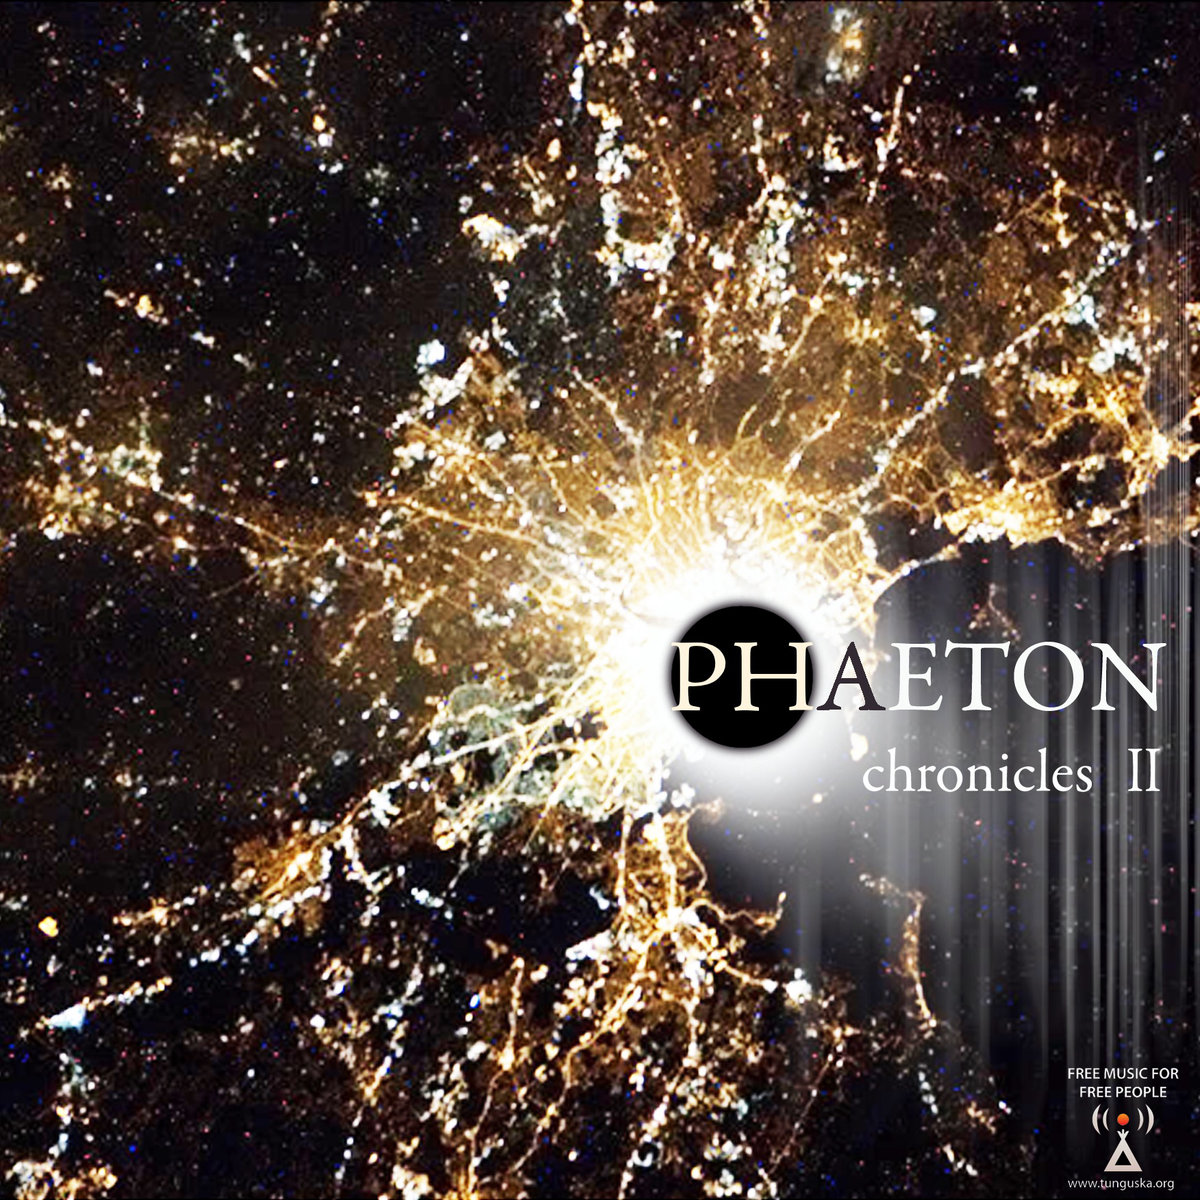 VadaDJ - LightSTrip @ 'Phaeton Chronicles - Volume 2' album (electronic, abstract electronic)